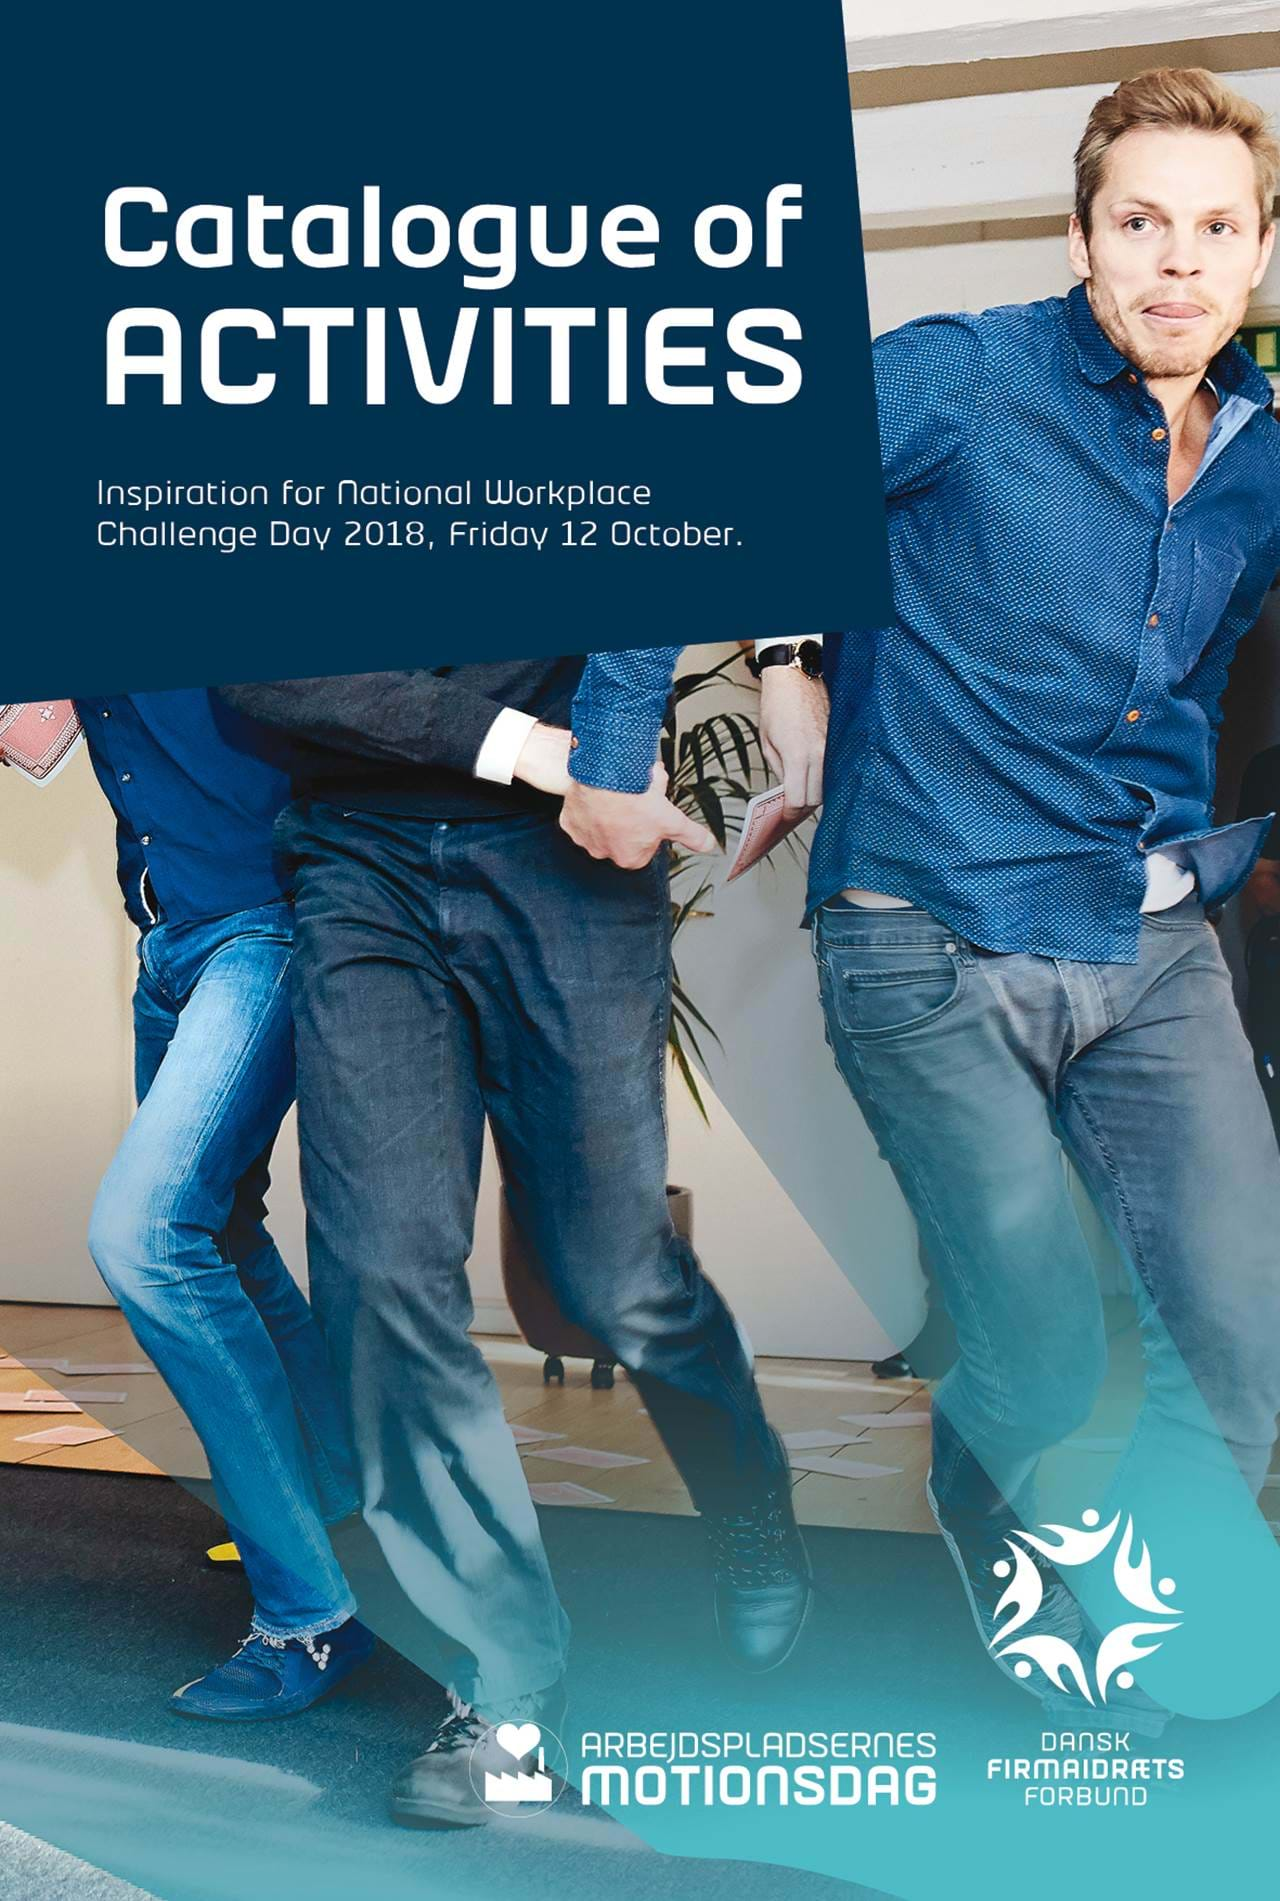 Catalogue of ACTIVITIES